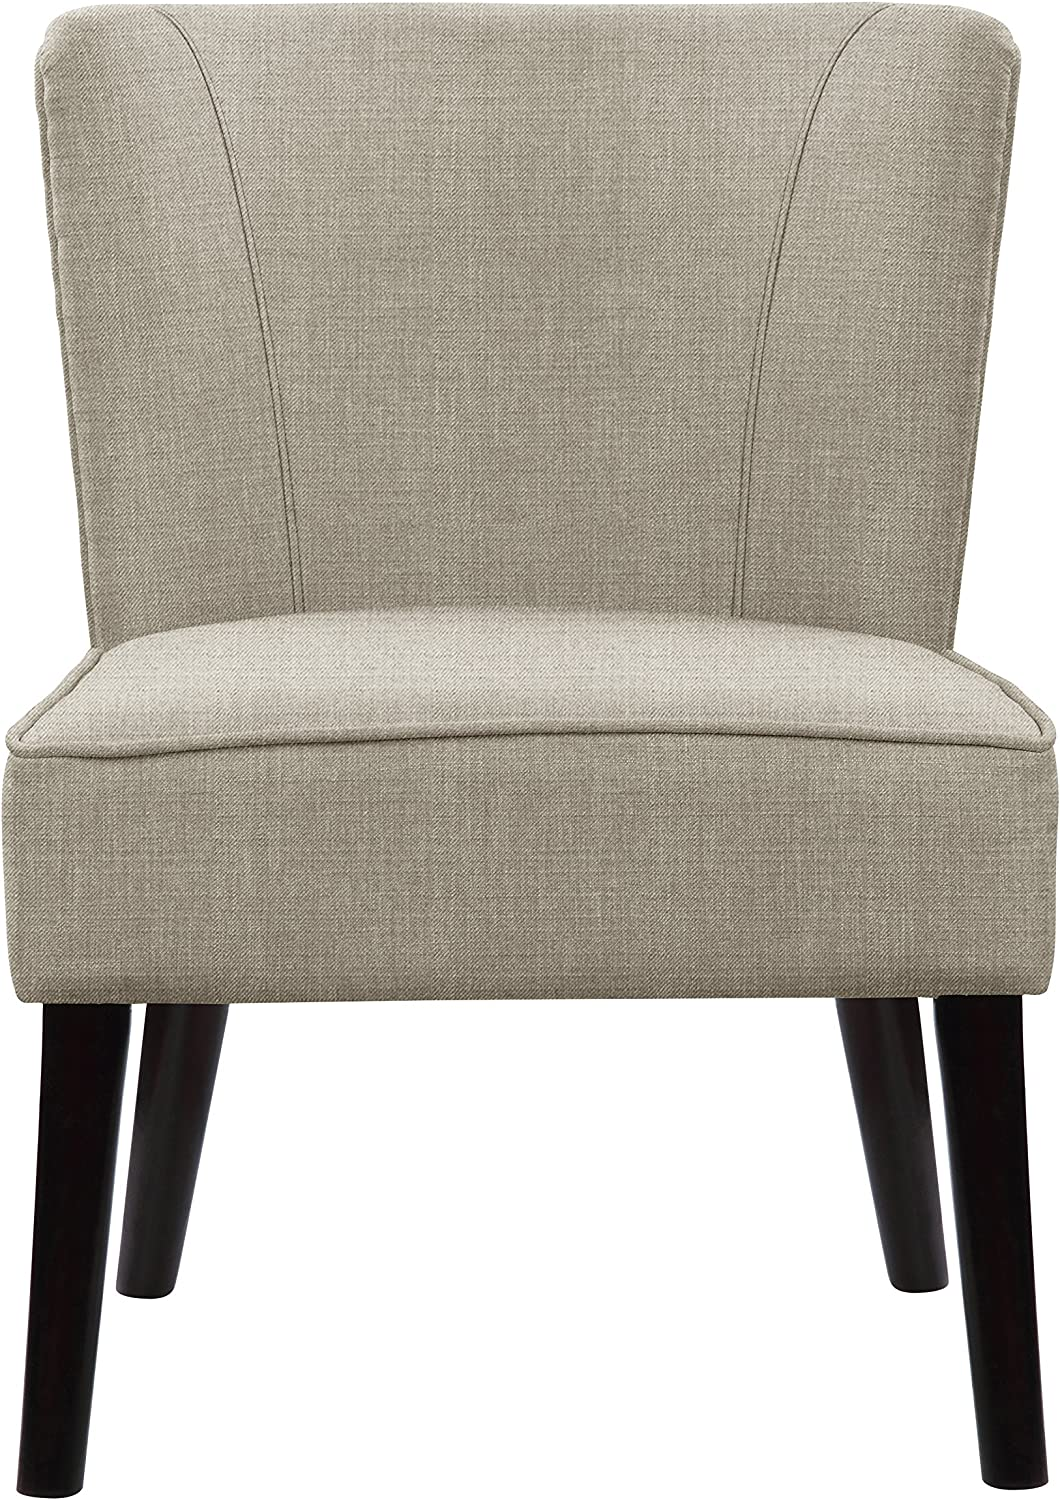 Patricia Accent Chair with sager Fabric   453